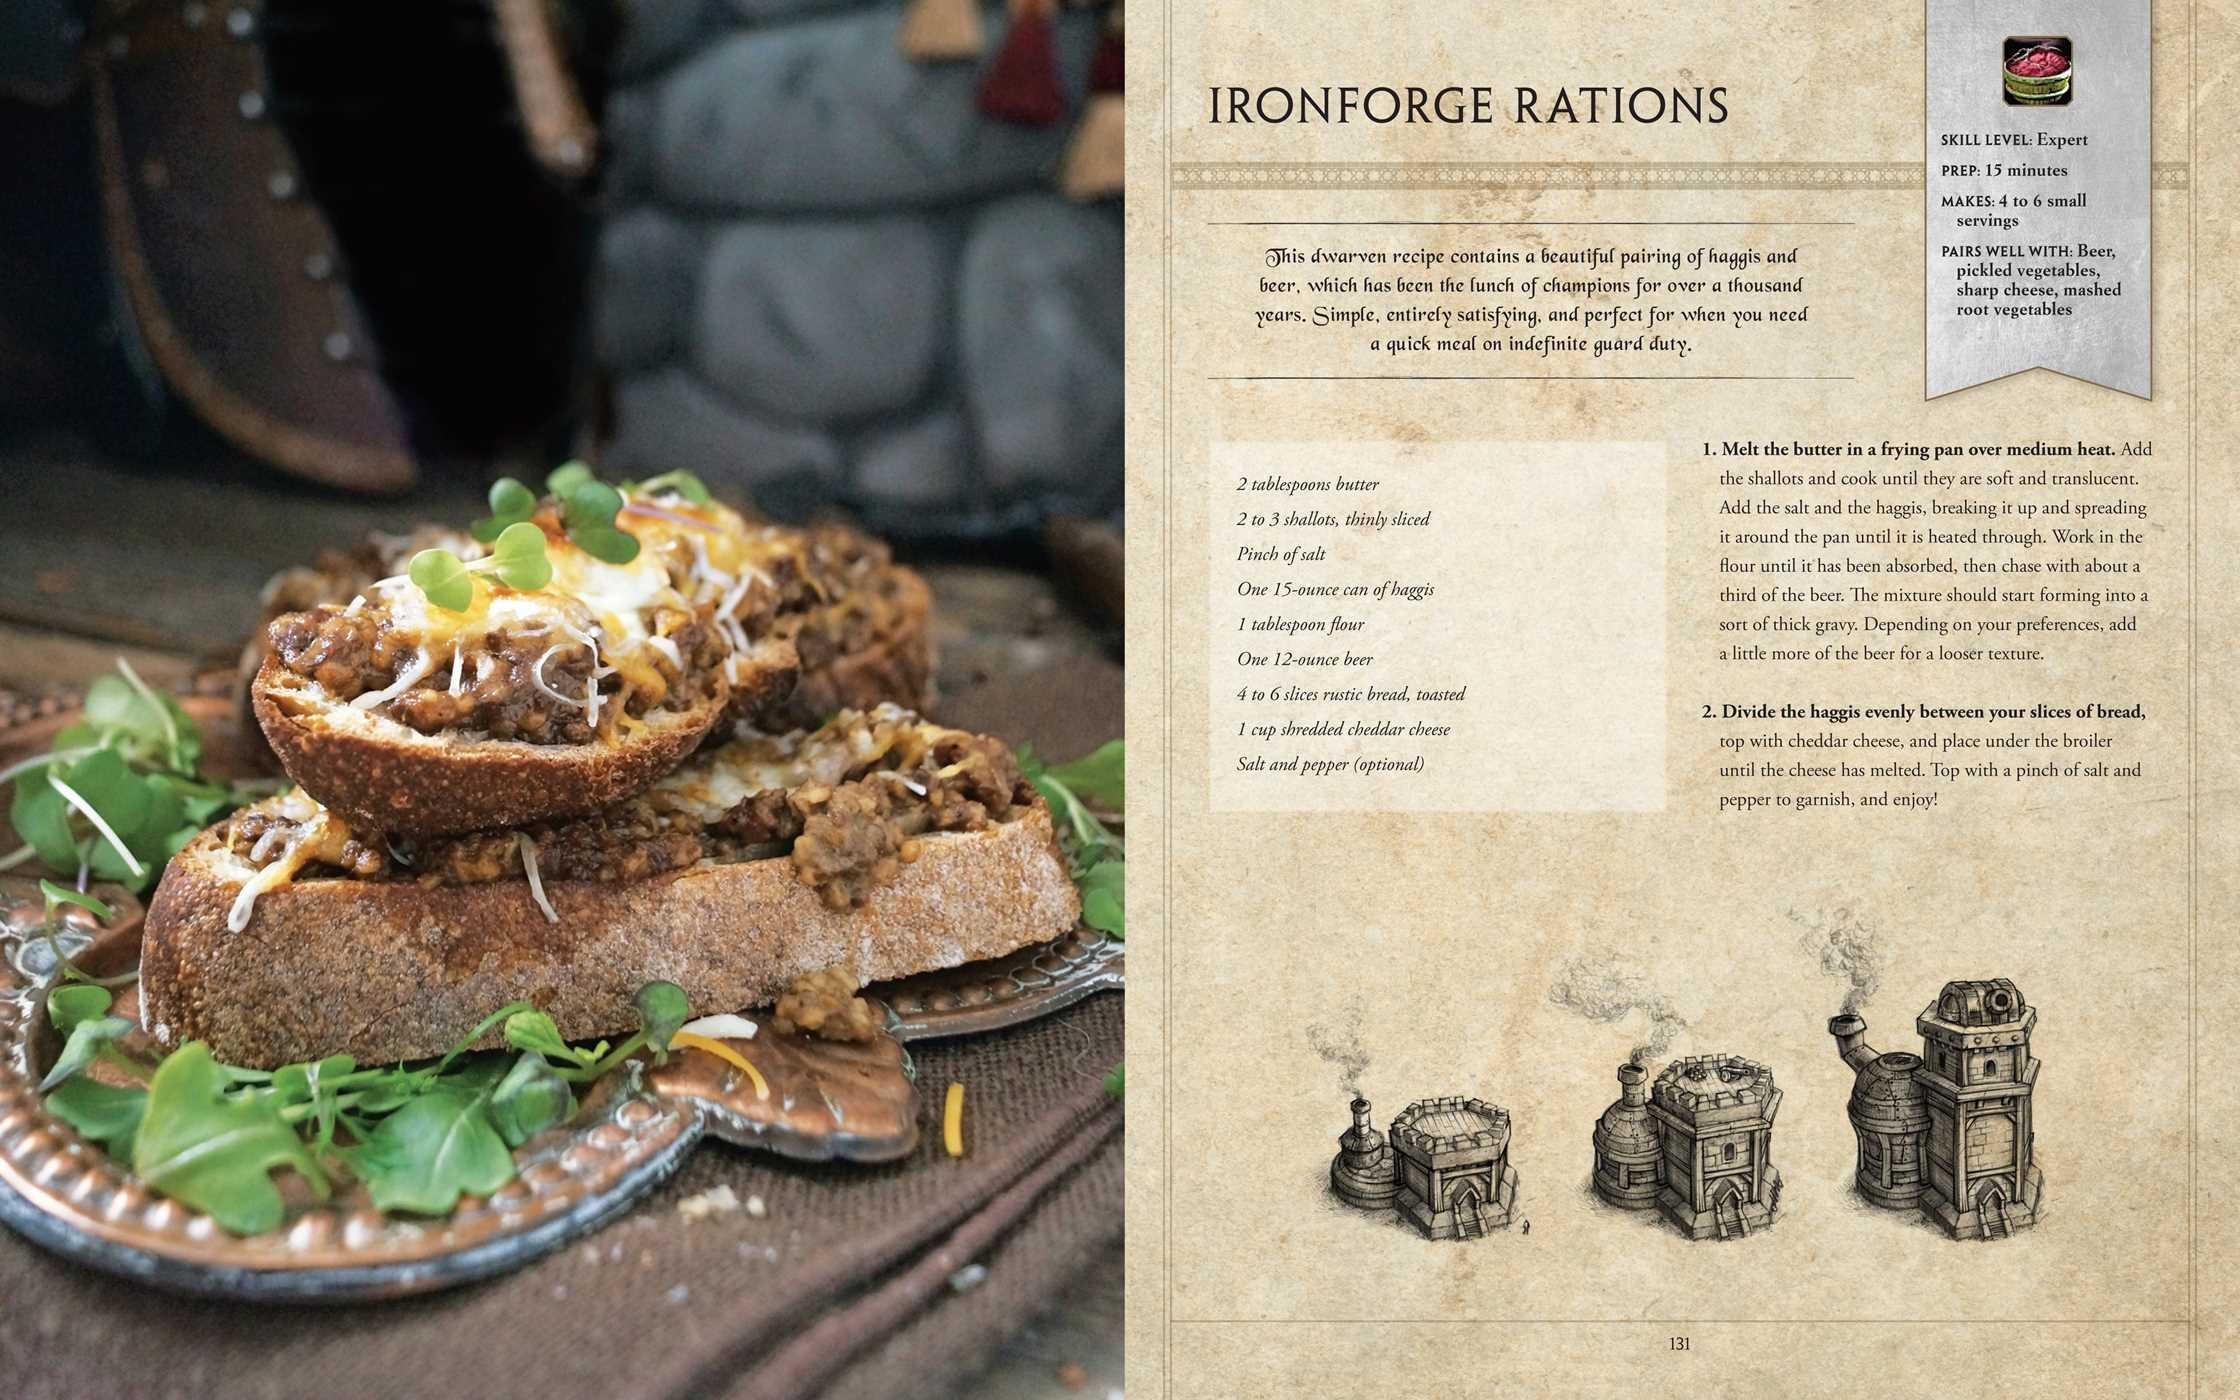 World of warcraft the official cookbook chelsea monroe cassel world of warcraft the official cookbook chelsea monroe cassel 9781608878048 books amazon forumfinder Image collections